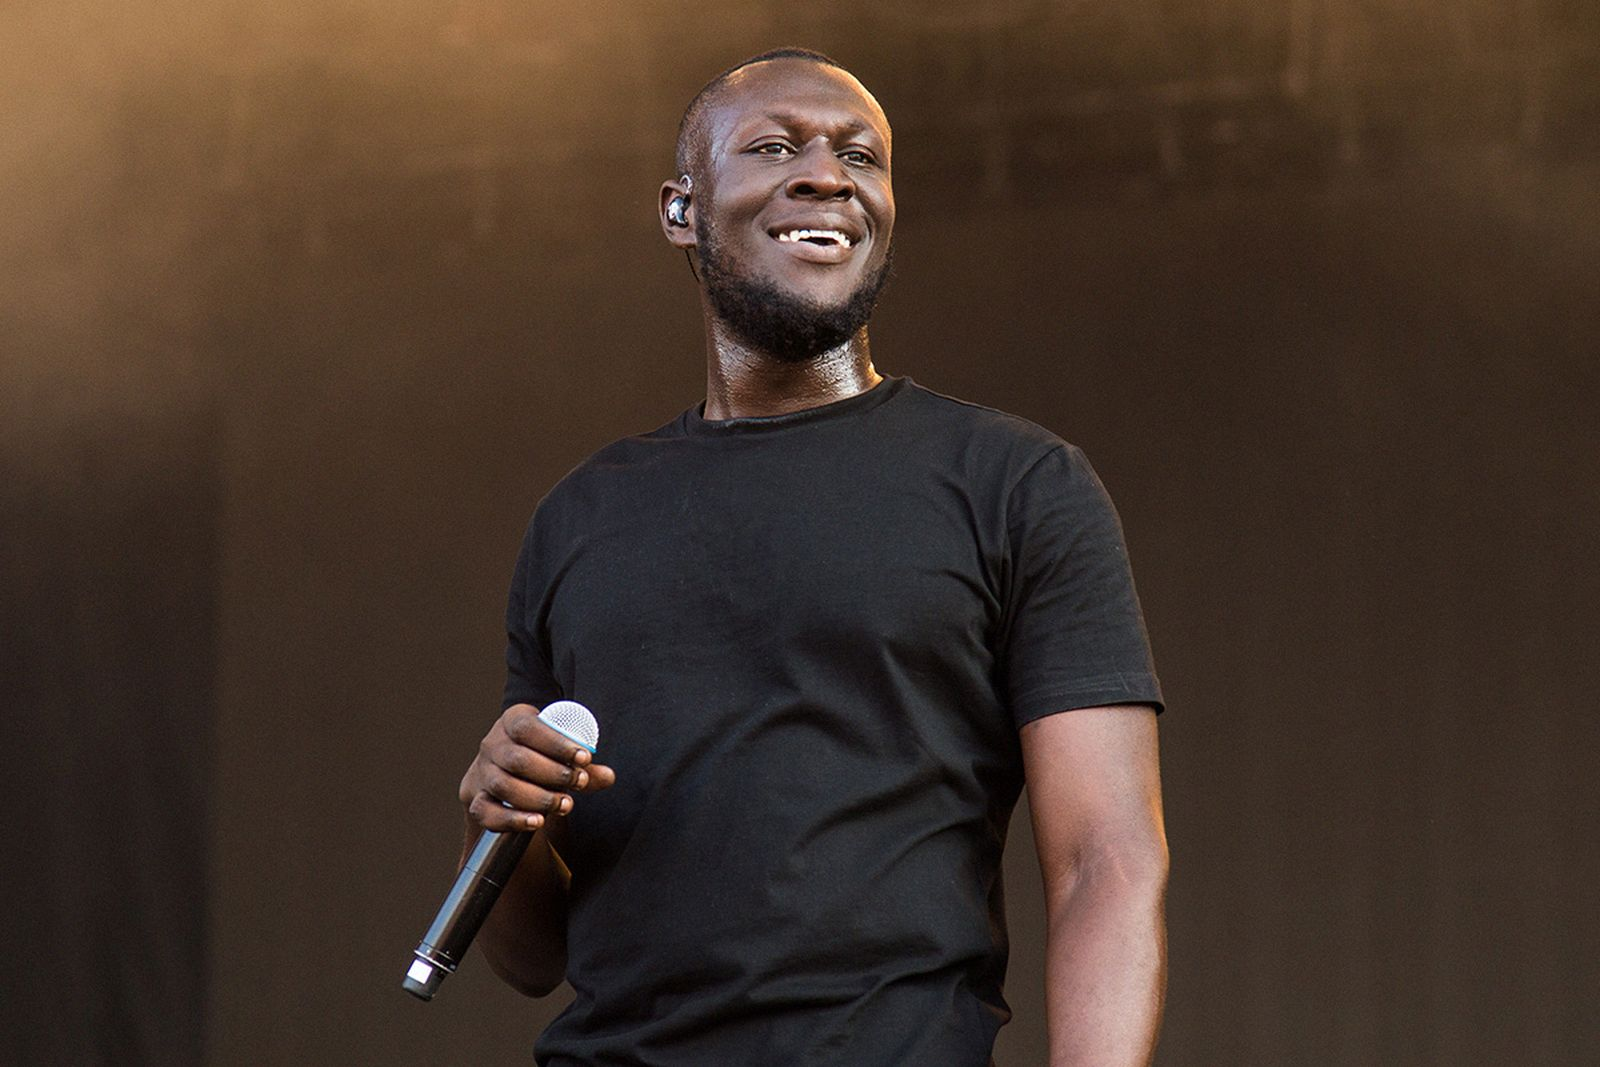 stormzy uk raps new progenitor main Gang Signs & Prayer